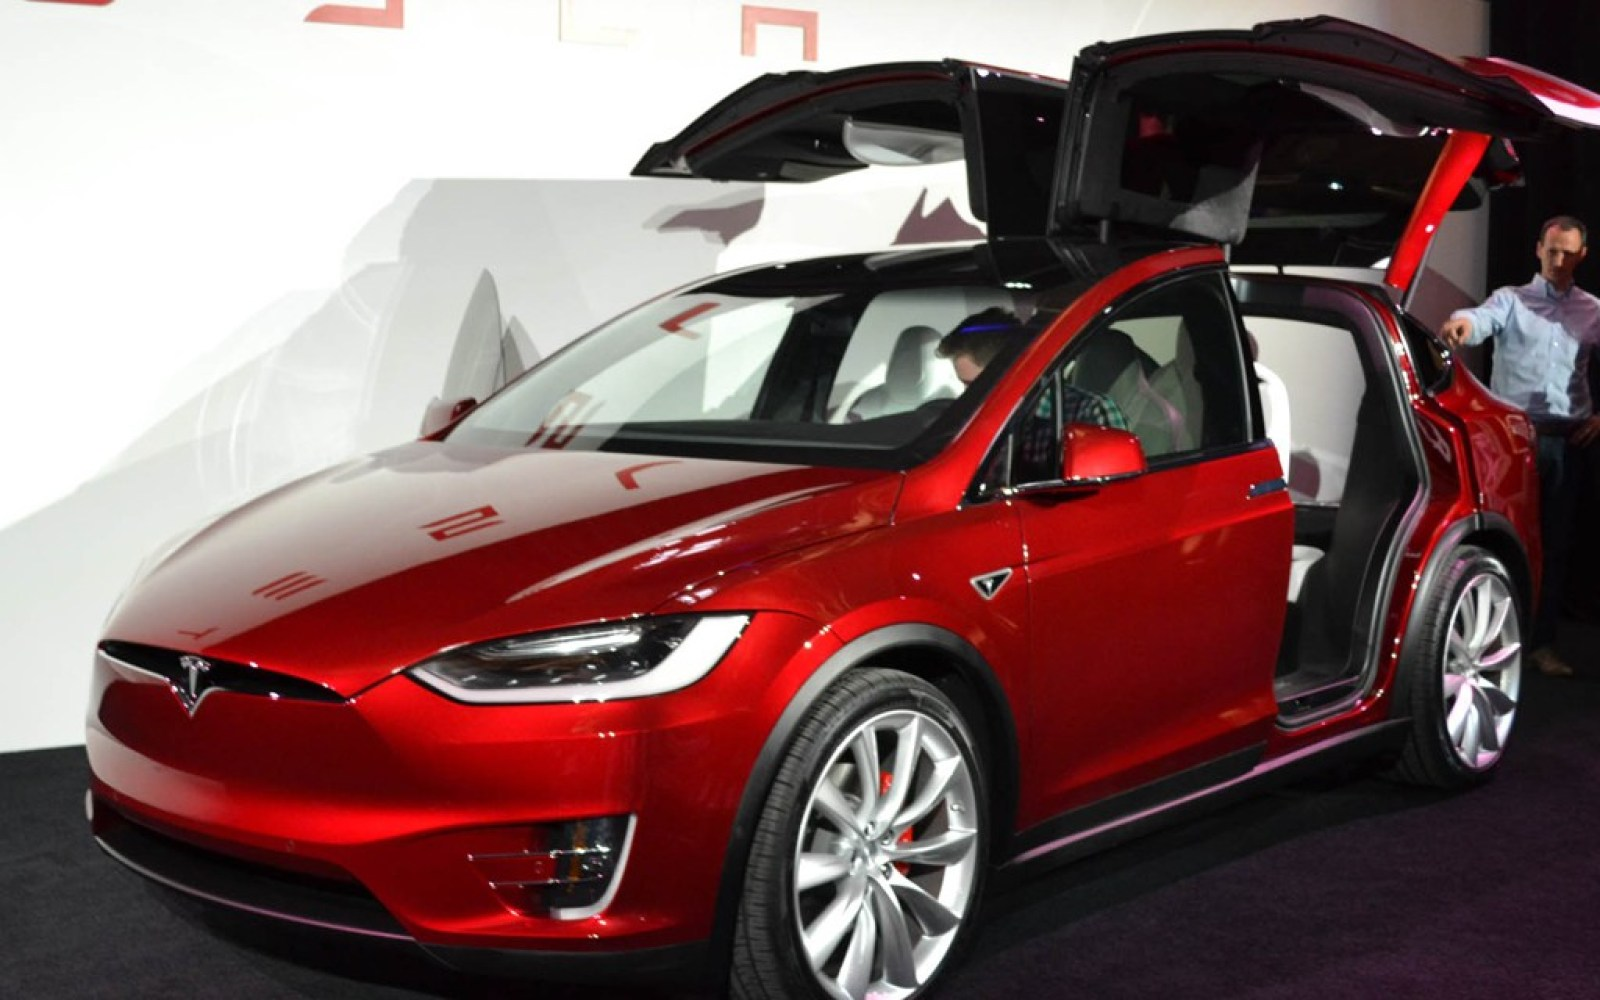 The Tesla Model X should reach its full production rate in Q2: Here's what Elon Musk had to say about Tesla's new SUV